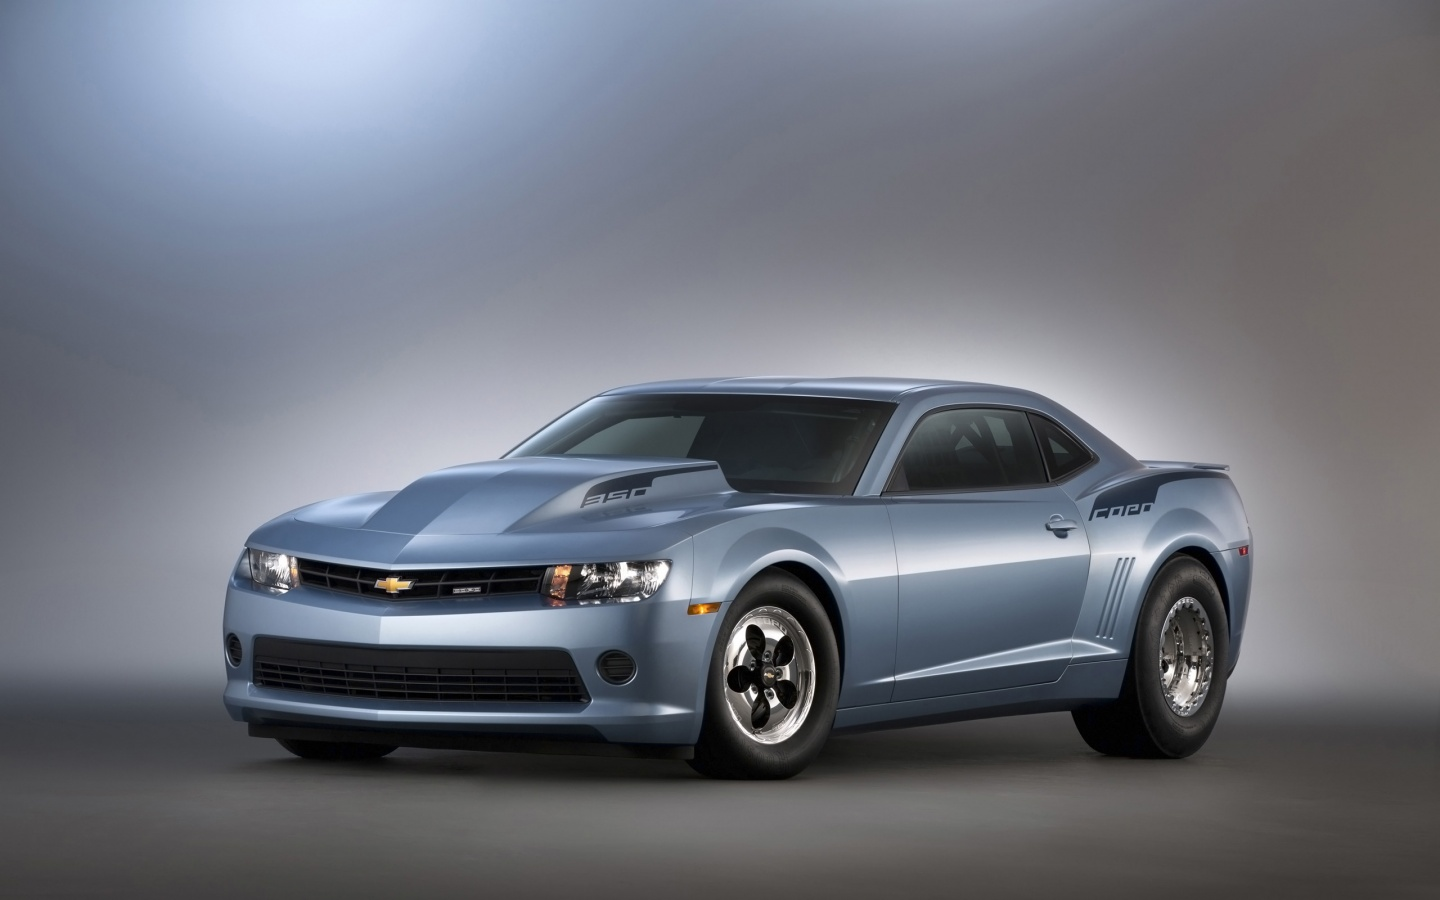 2014 COPO Camaro Wallpaper HD Car Wallpapers 1440x900